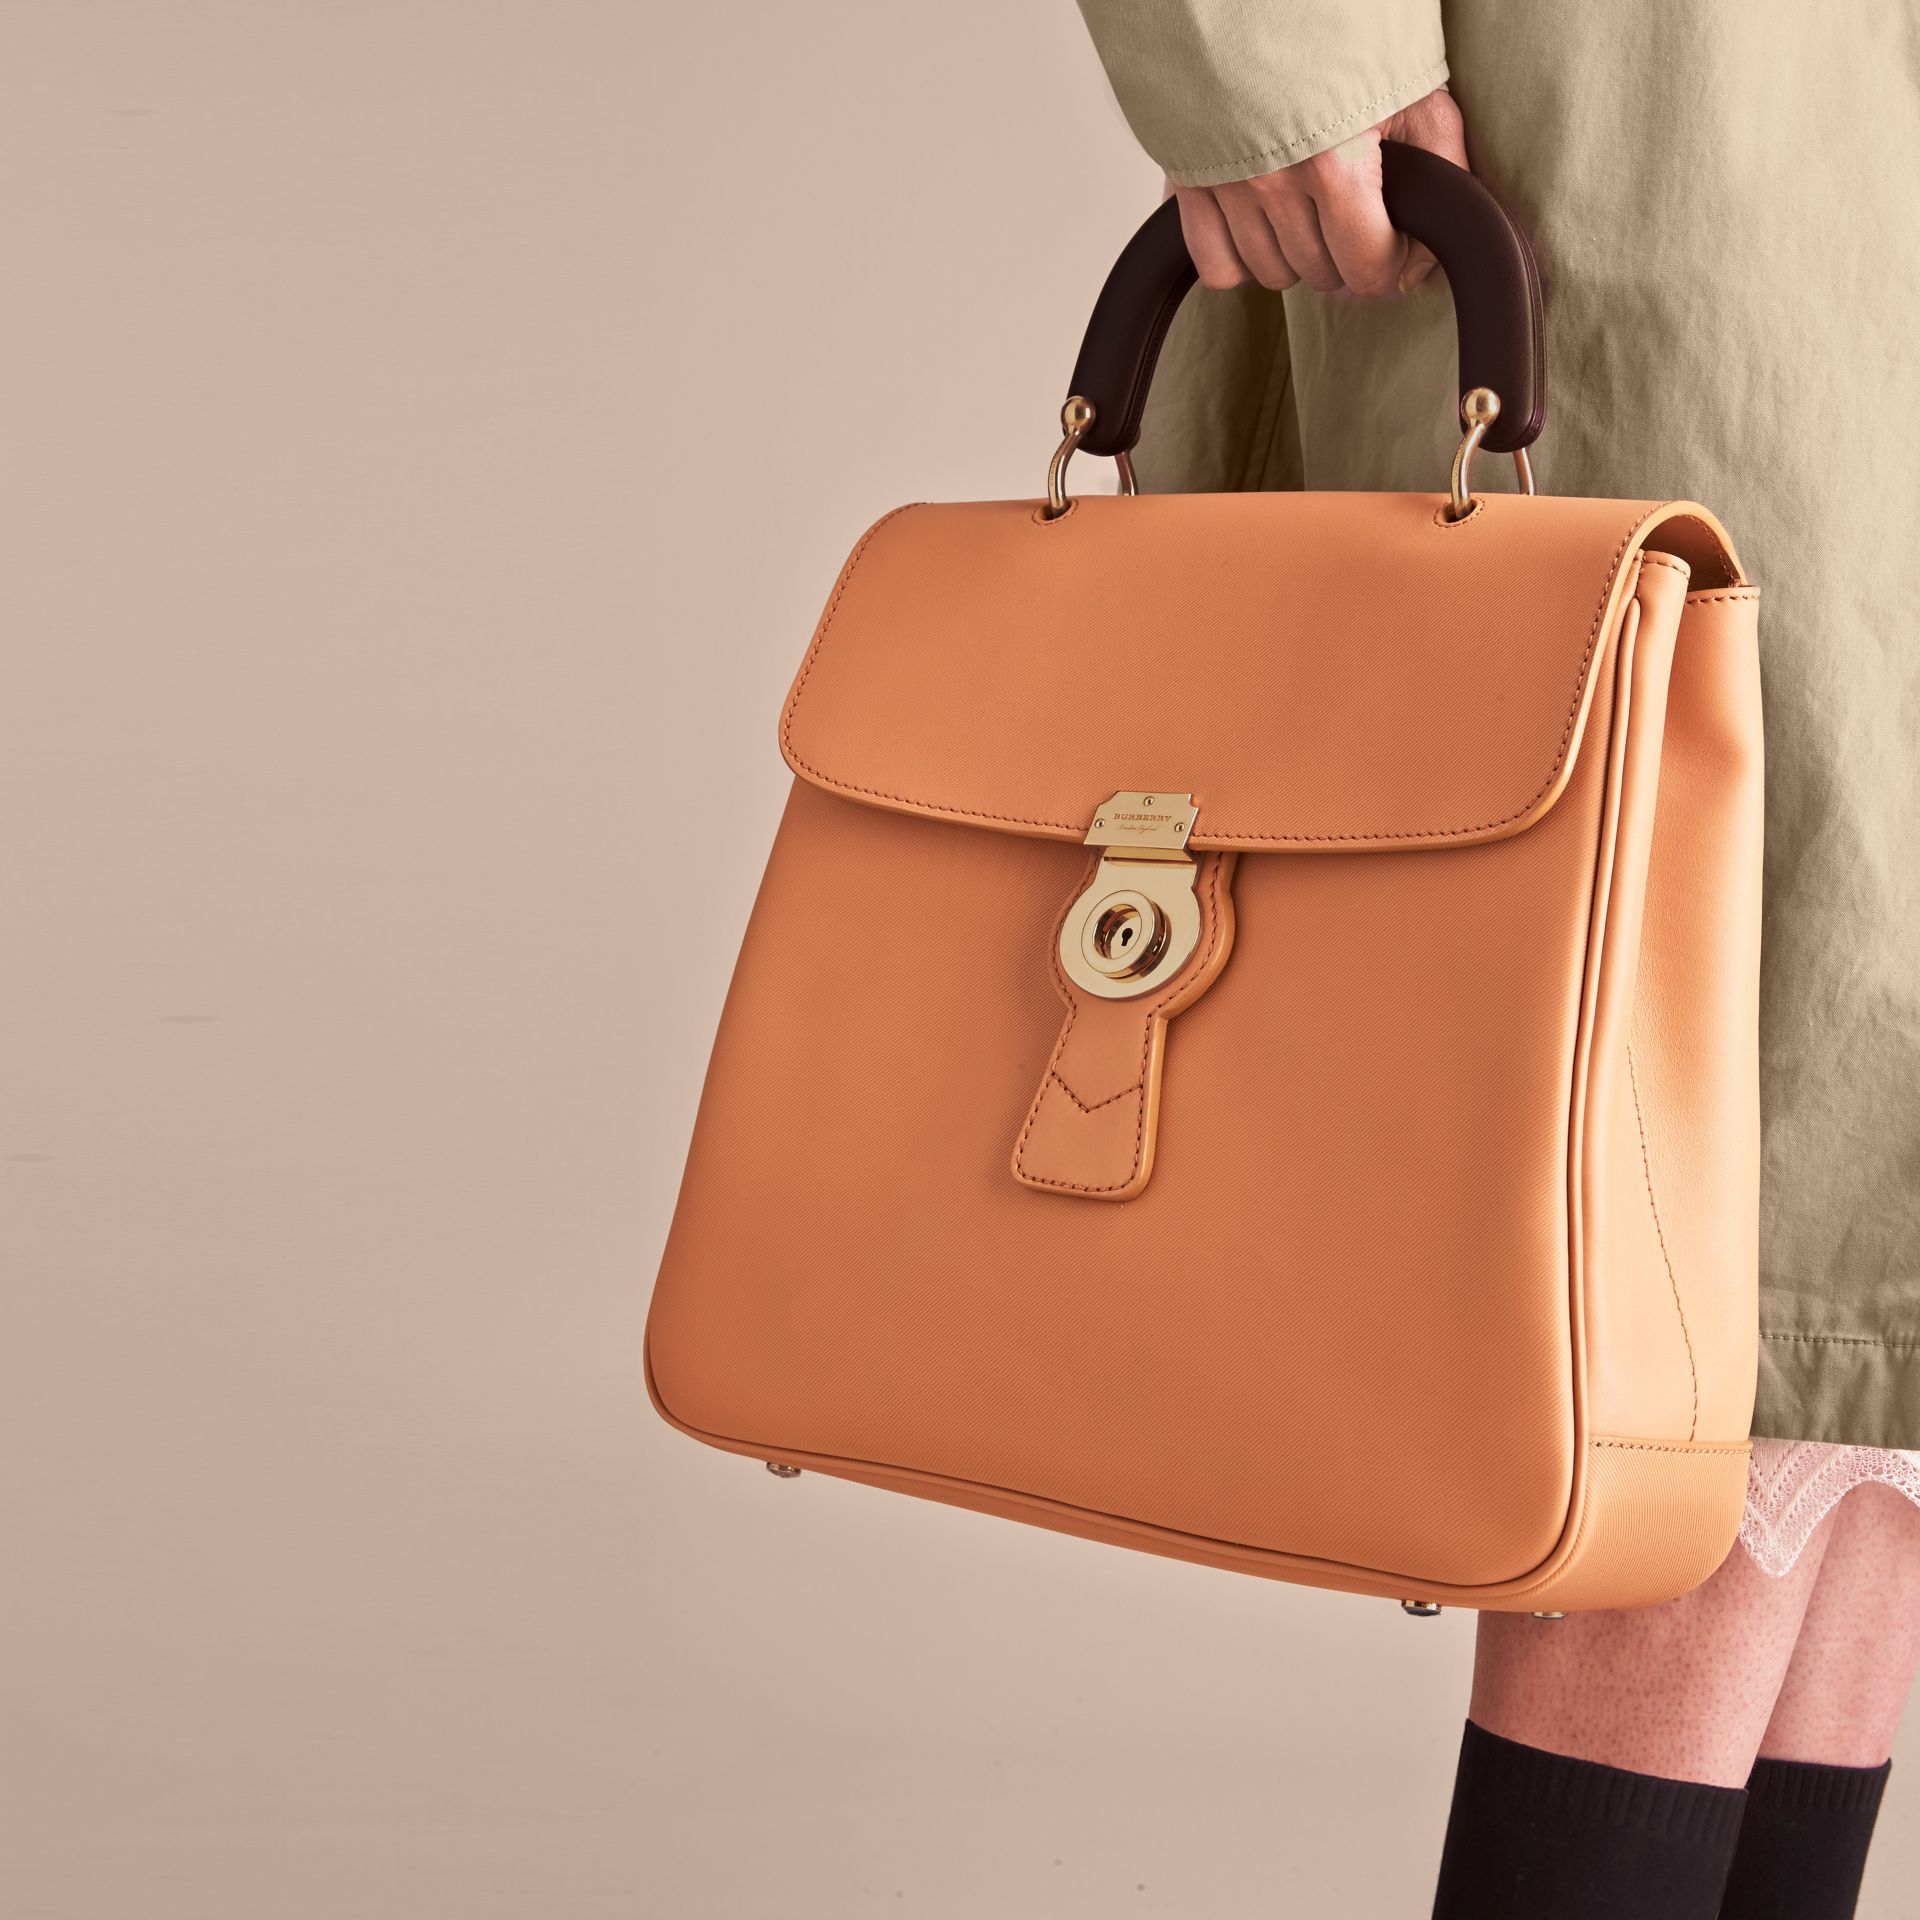 The Large DK88 Top Handle Bag in Pale Clementine - Women | Burberry Hong Kong - gallery image 7